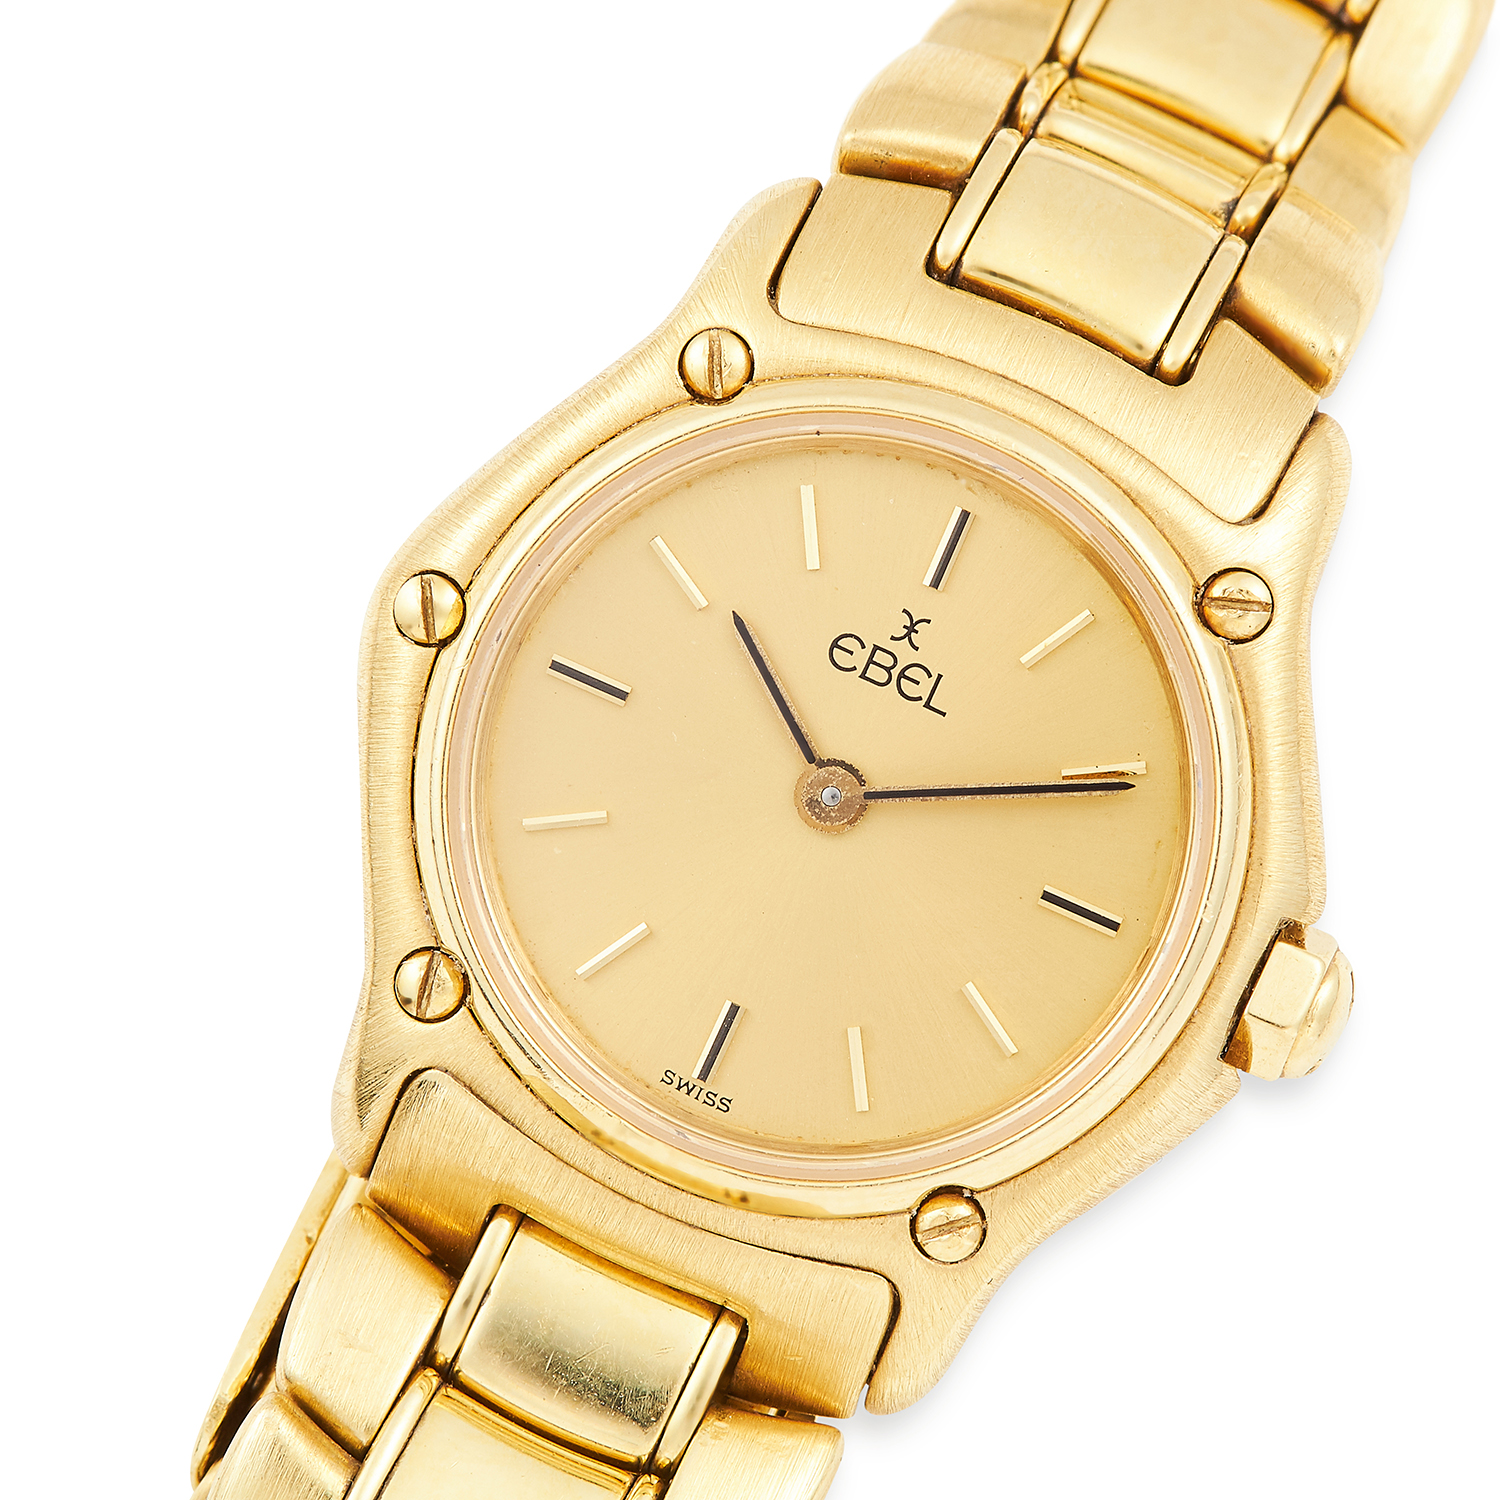 Los 257 - LADIES EBEL WAVE WRISTWATCH in 18ct yellow gold, 23mm case size, yellow gold strap, stamped 750,